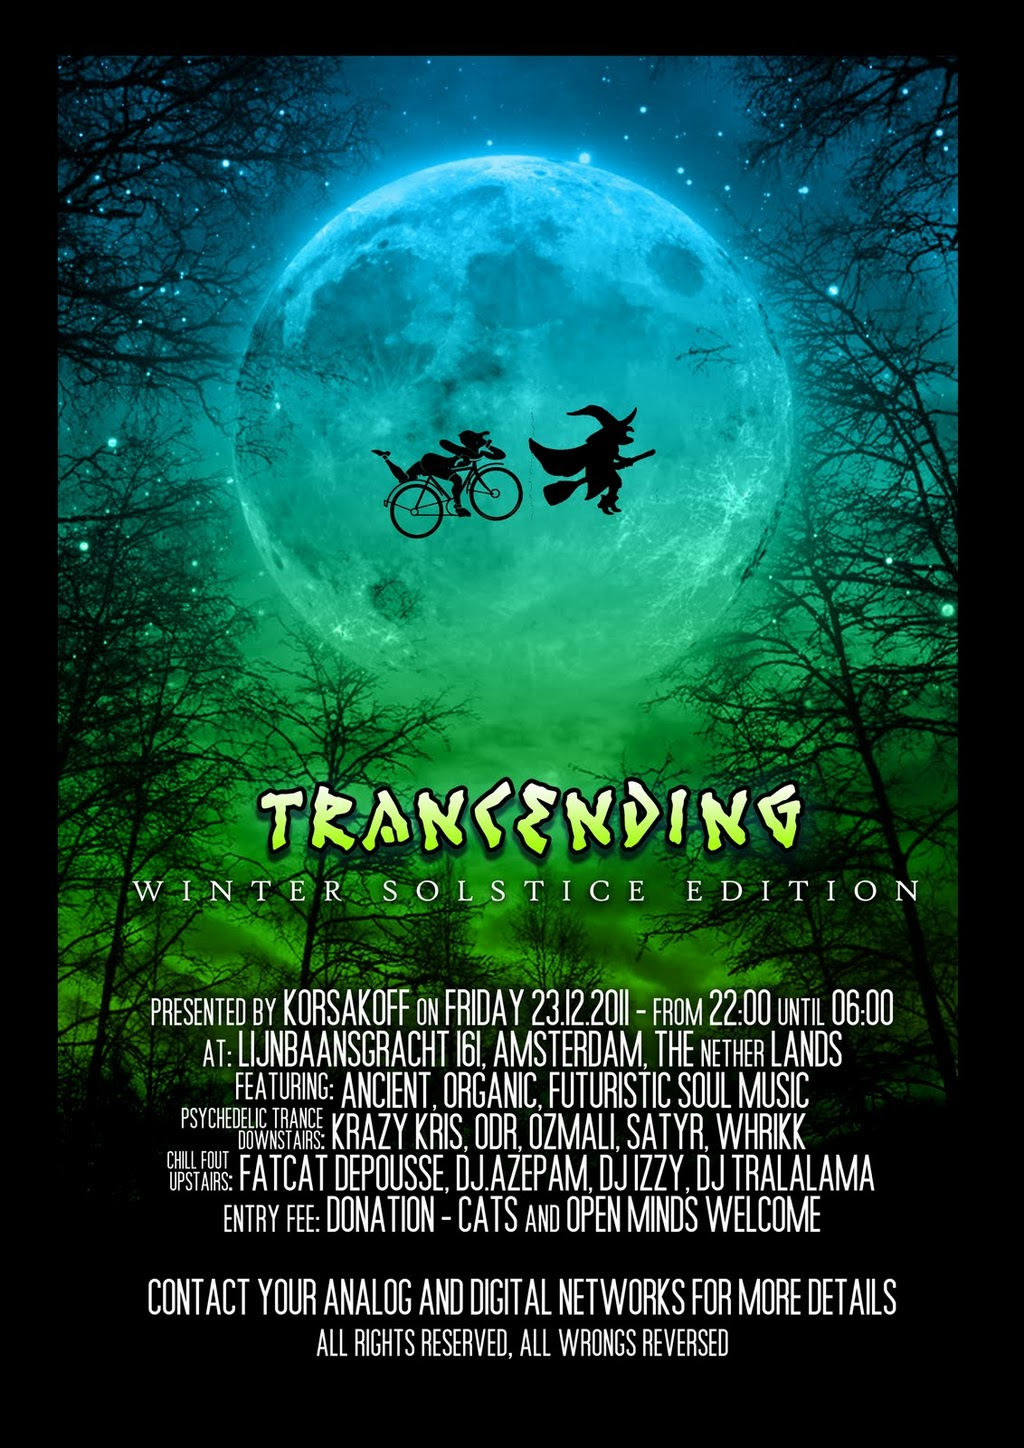 Trancending - The Winter Solstice Edition - 23.12.2011